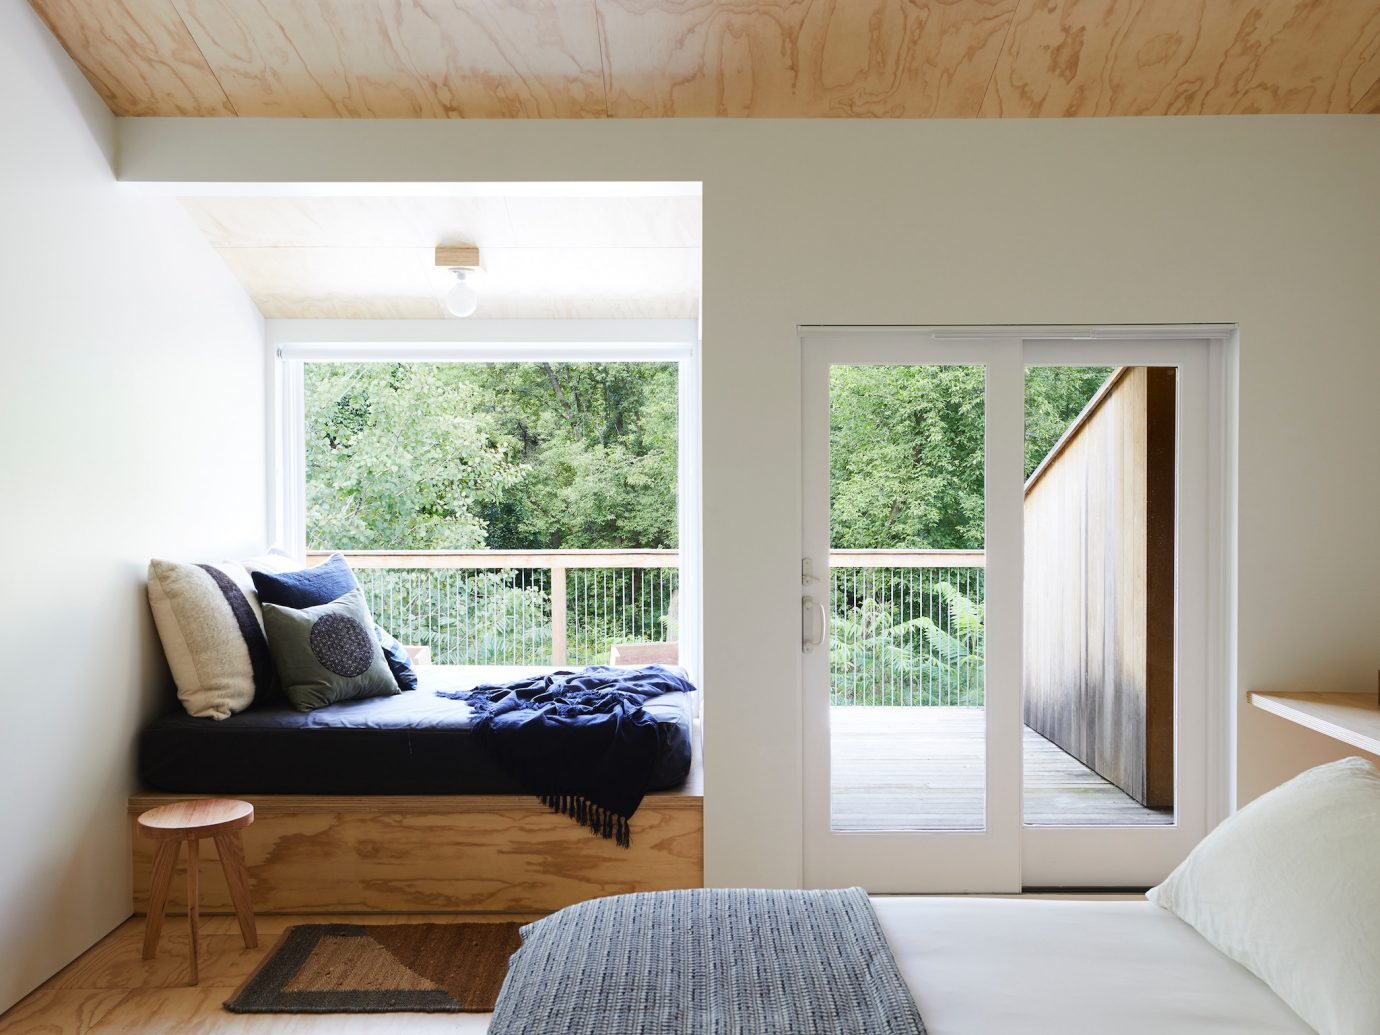 White room with a bed another hangout bed by a window with a view of nature and a private deck